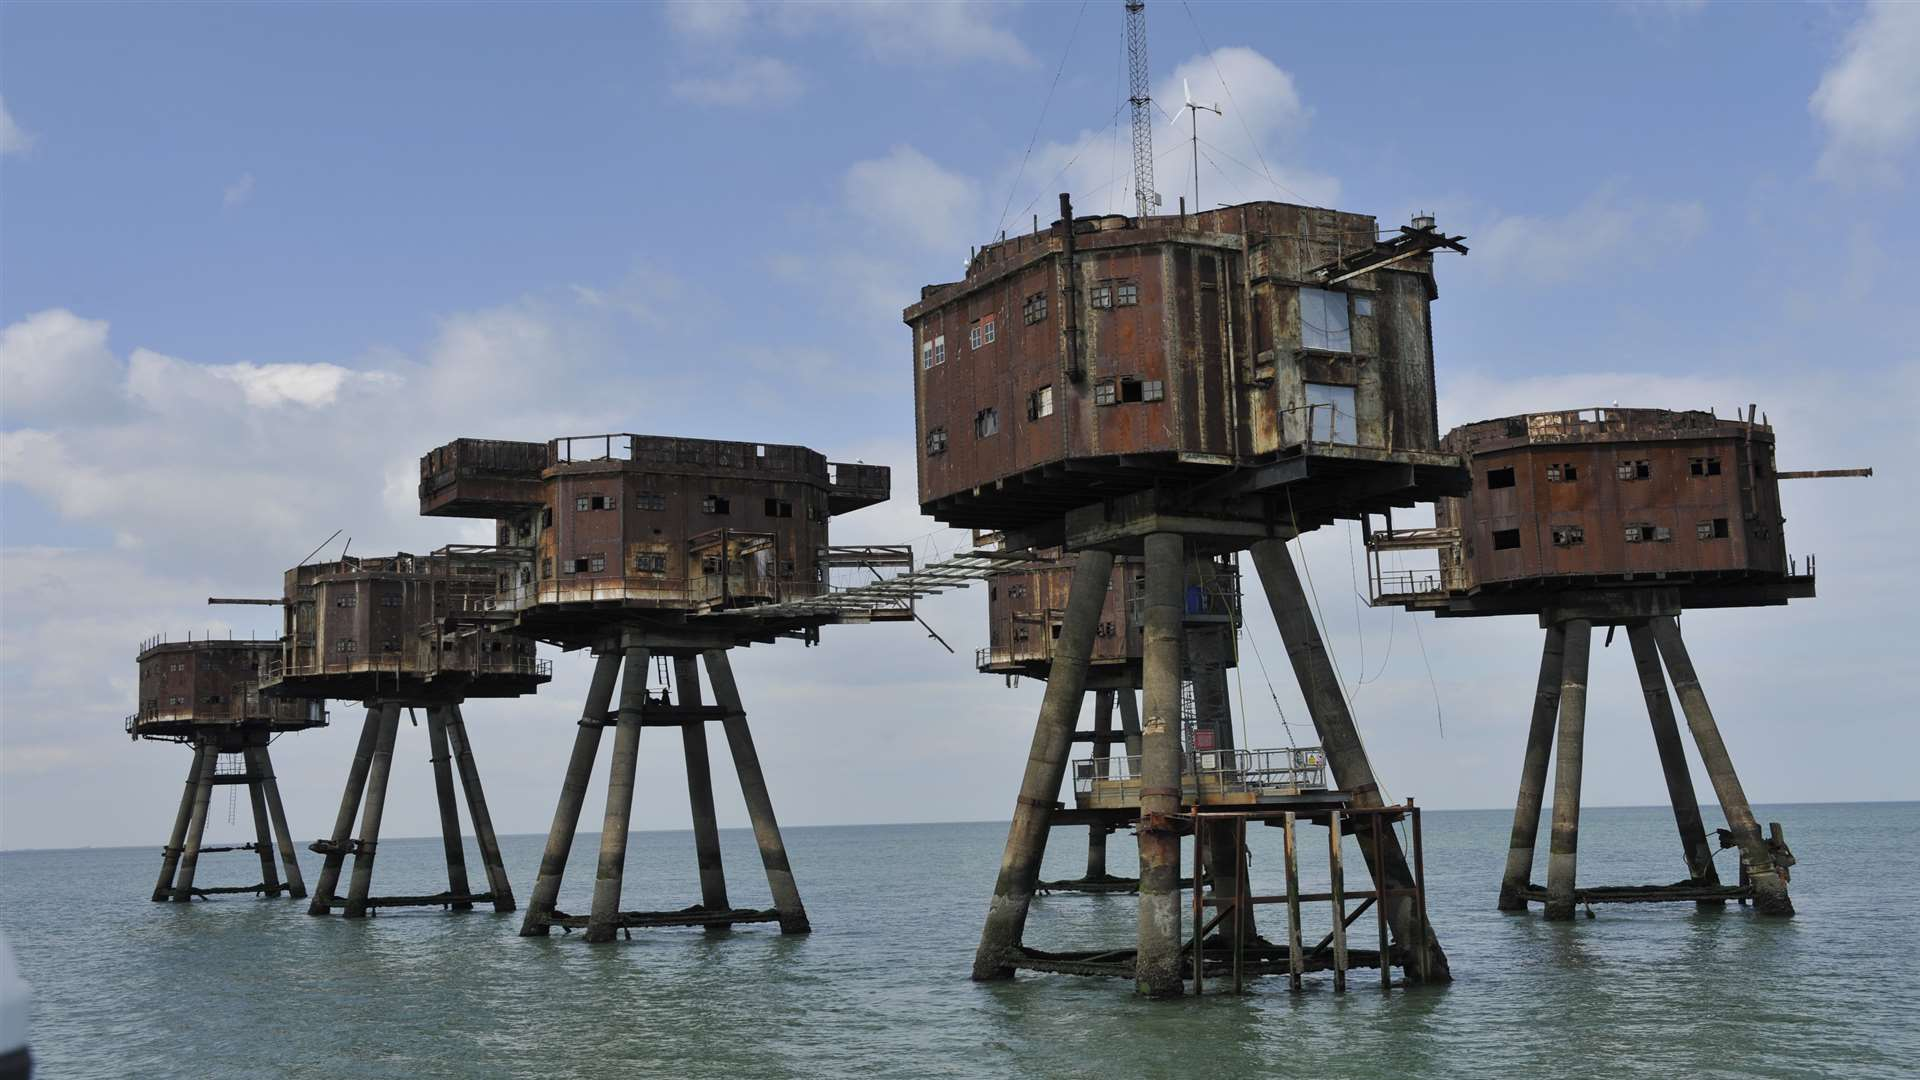 Red Sands sea forts off the coast of Kent